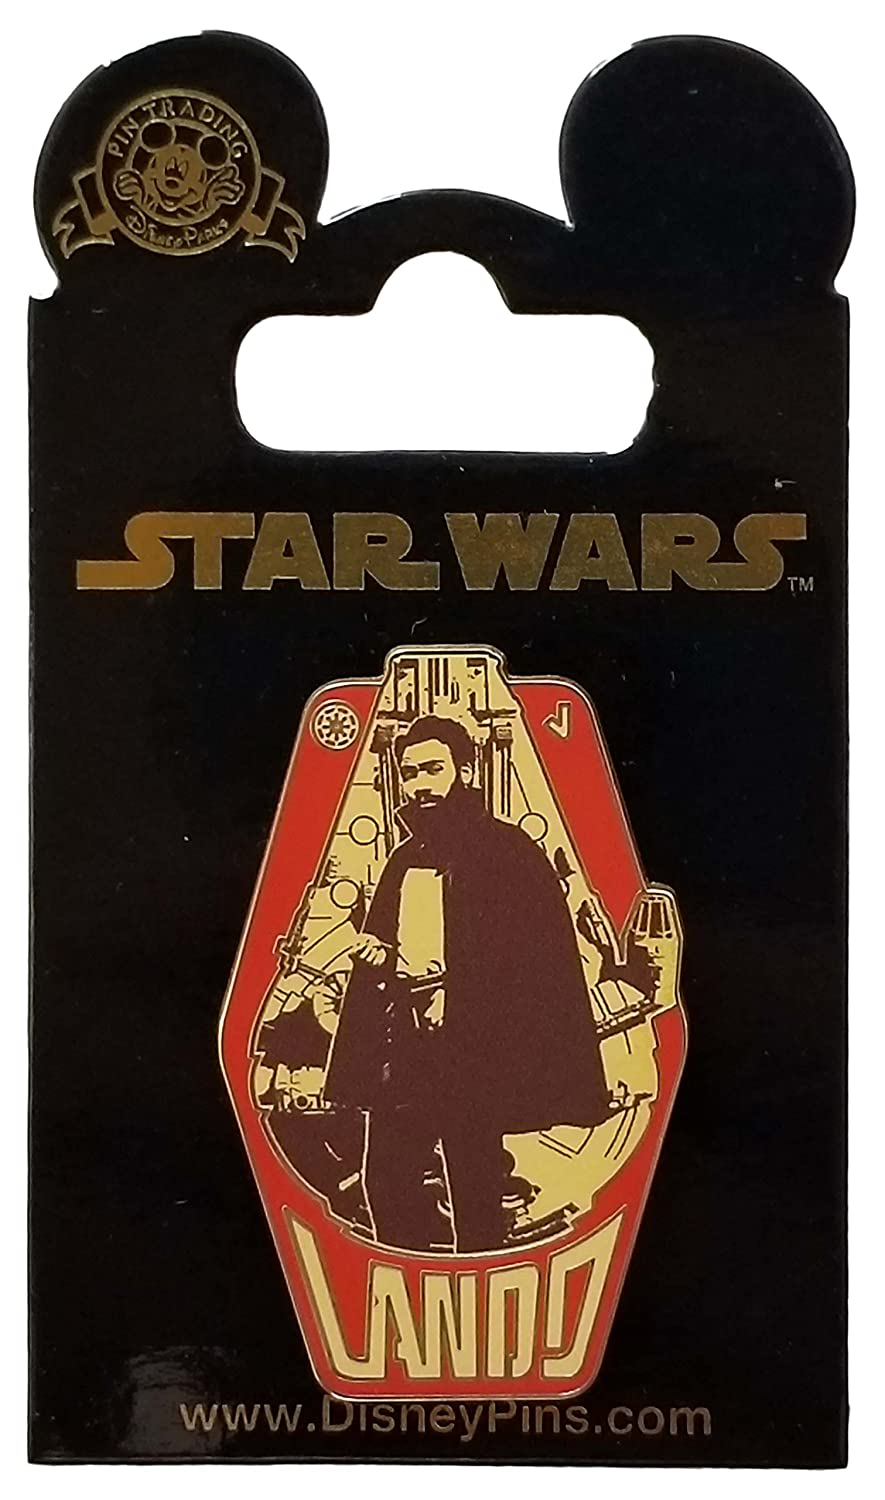 Disney Pin - Star Wars - Solo - Lando